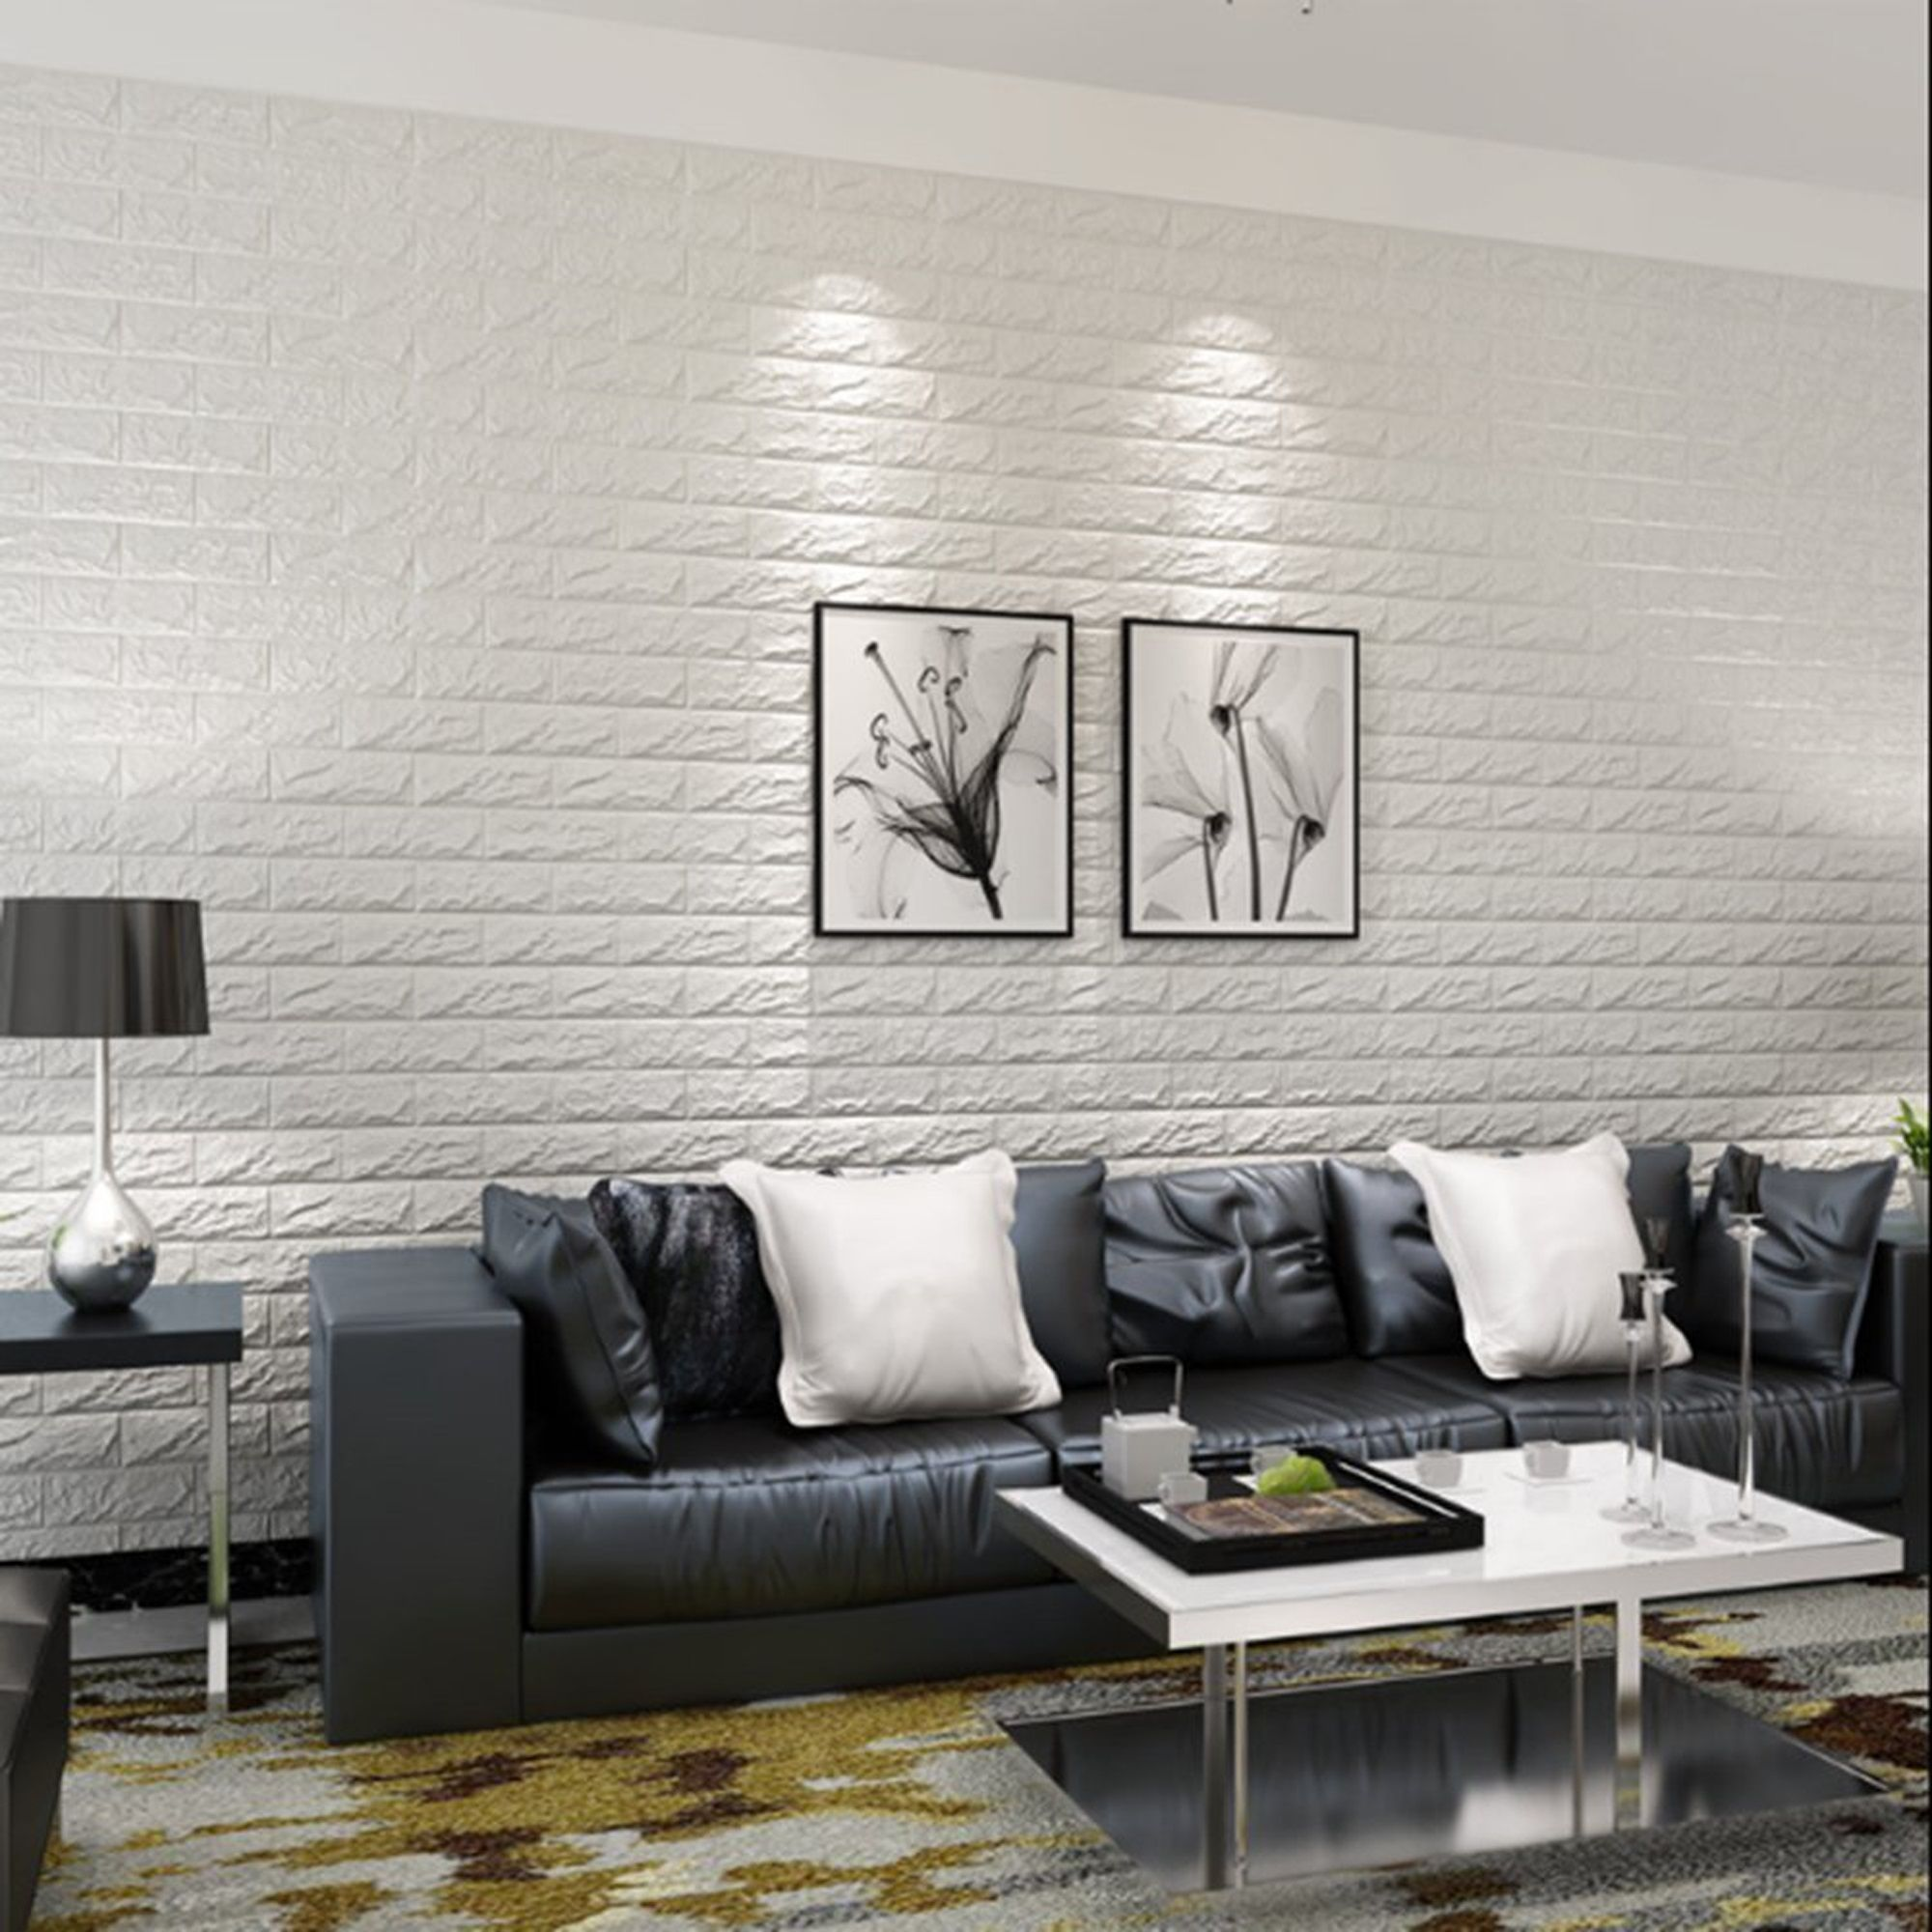 Home Improvement In 2020 White Paneling White Brick Wallpaper Living Room Restaurant